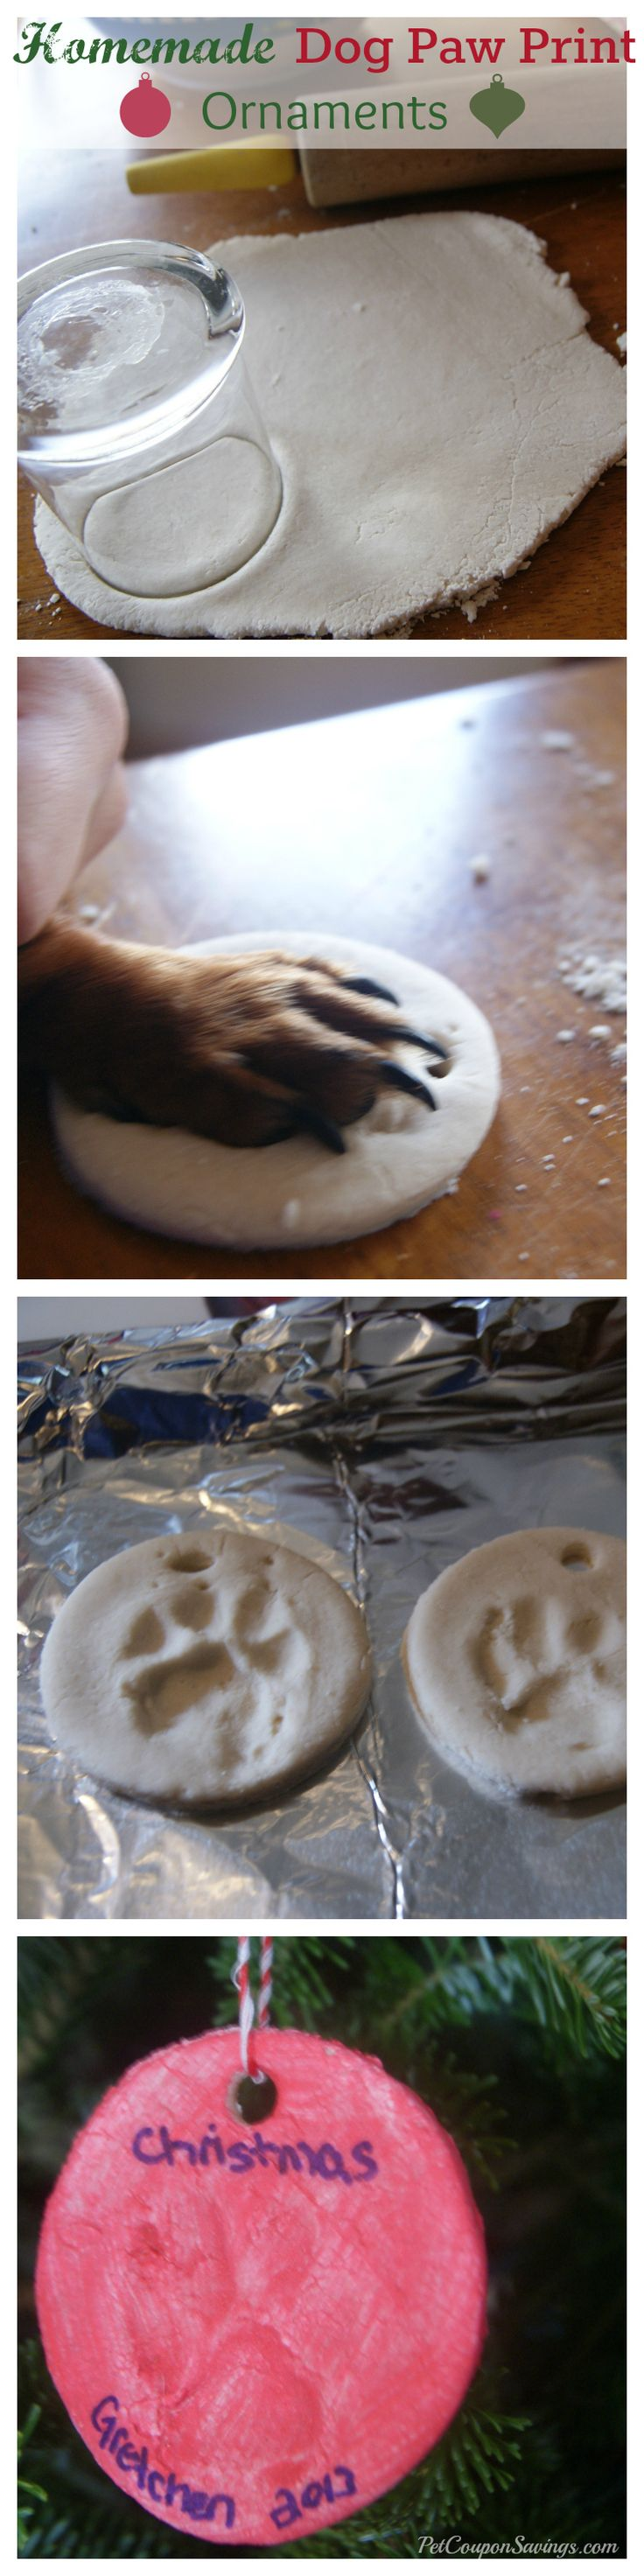 Homemade Dog Paw Print Ornaments. How cute are these? They're so easy to make, too! #diy #homemade #Christmas #pets